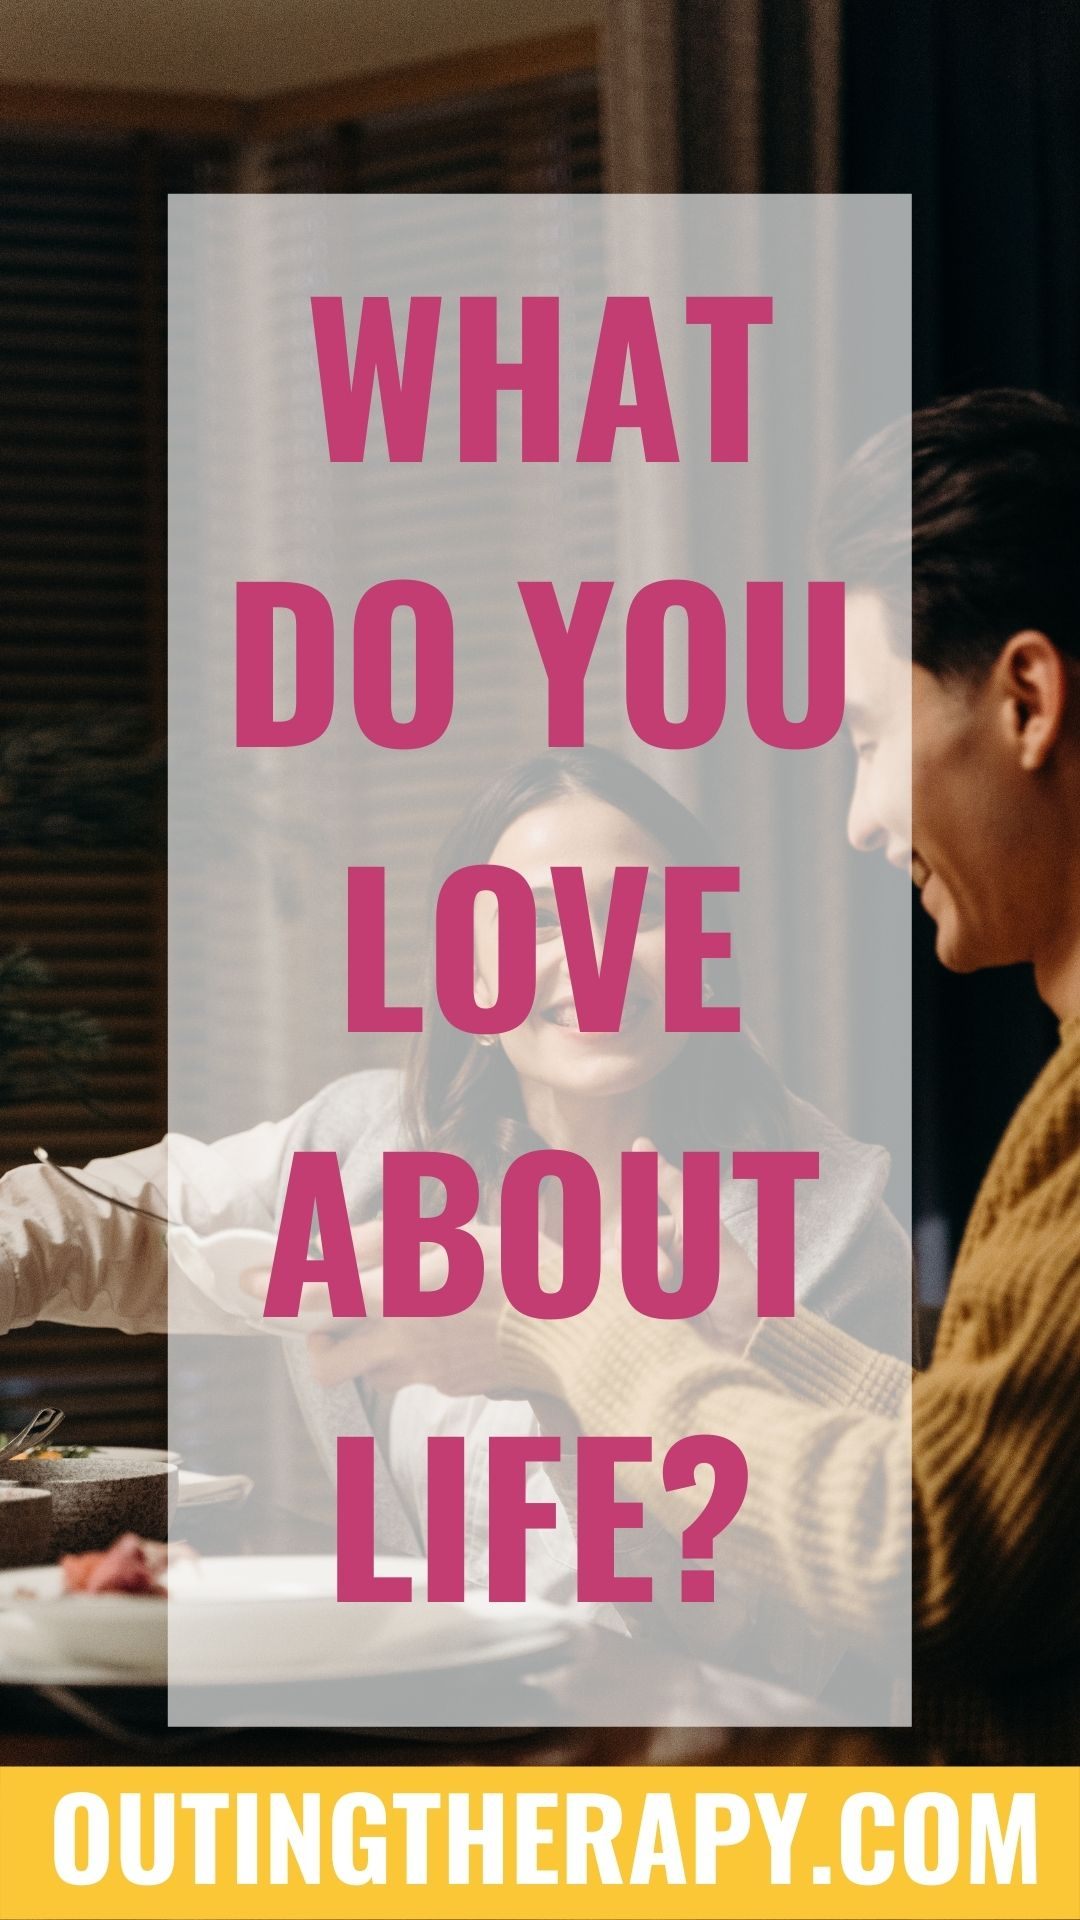 WHAT DO YOU LOVE ABOUT LIFE AND (MORE SPECIFICALLY) YOUR LIFE?